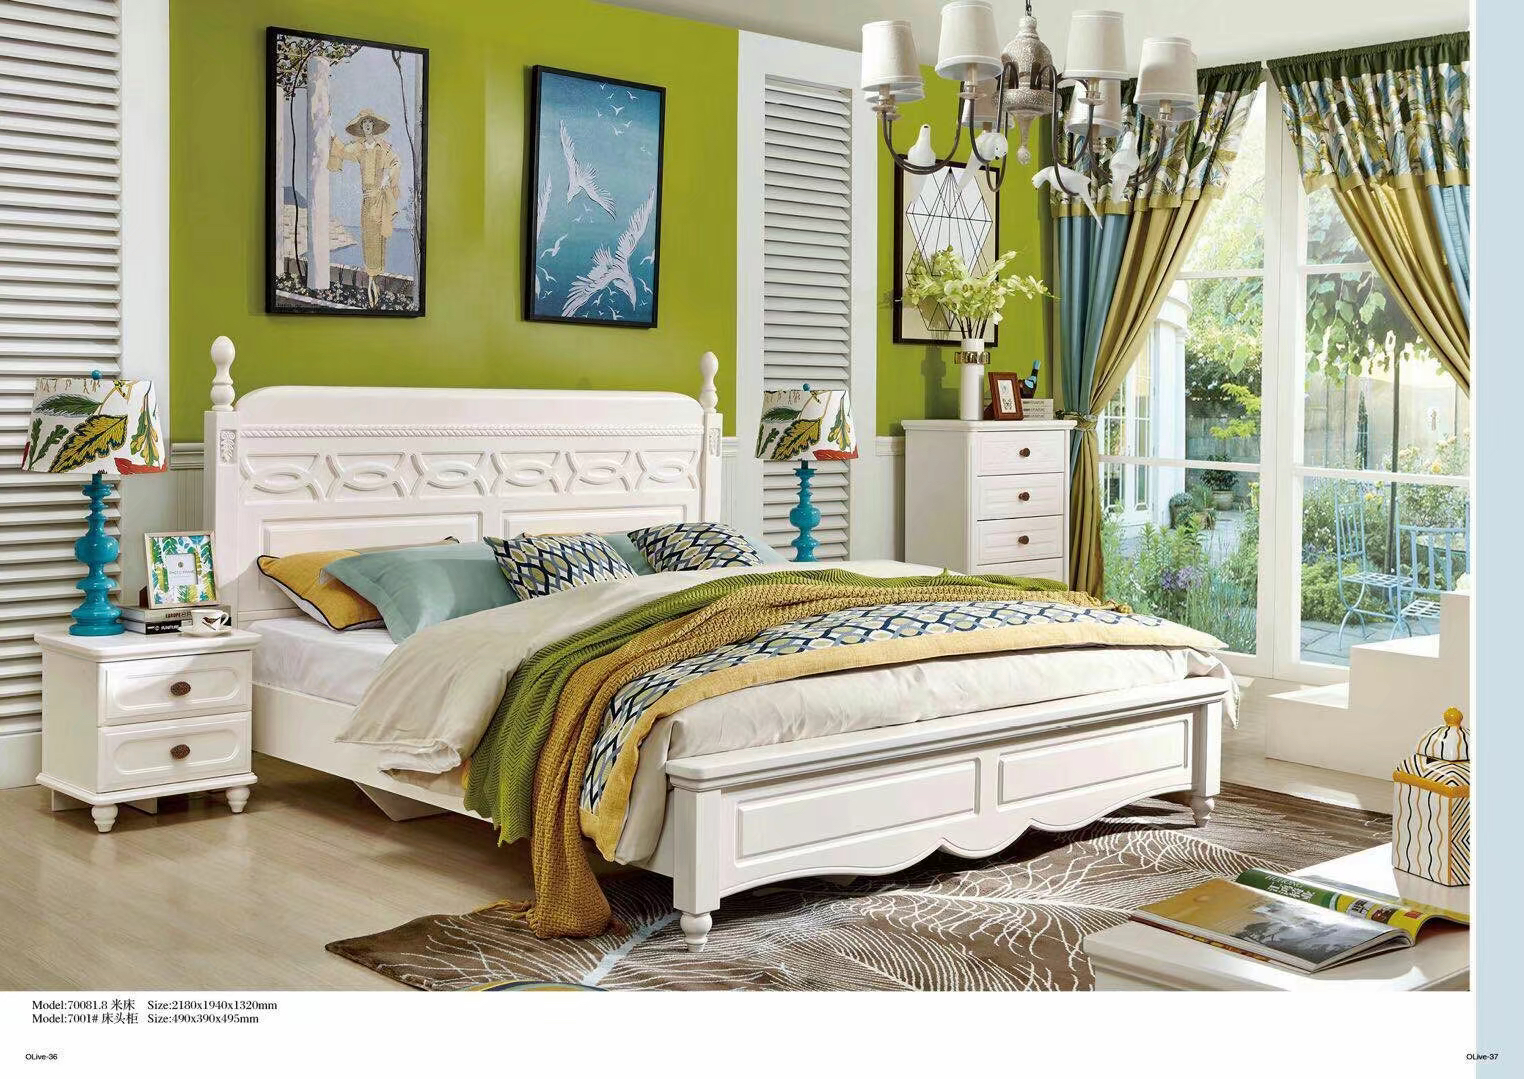 Cheap White Mdf Solid Wood Master Bedroom Furniture Set Modern Design  Wooden King Size Queen Size Bedroom Set - Buy Mdf Bedroom Sets,Master  Bedroom ...